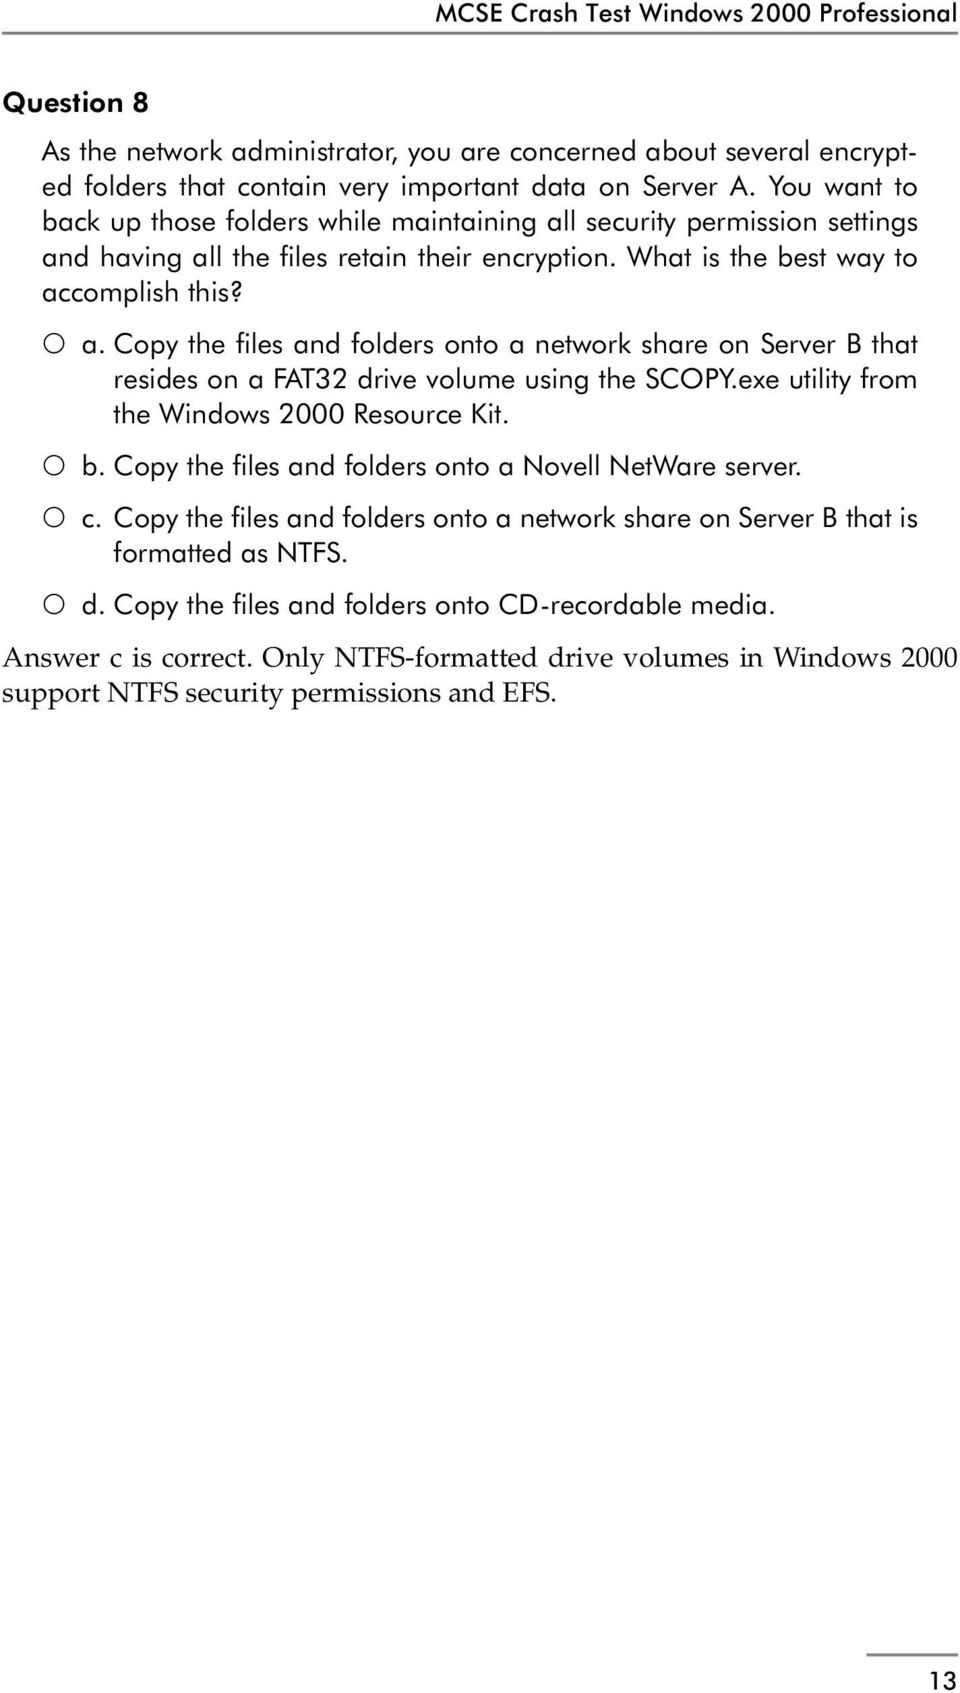 exe utility from the Windows 2000 Resource Kit. b. Copy the files and folders onto a Novell NetWare server. c. Copy the files and folders onto a network share on Server B that is formatted as NTFS. d.